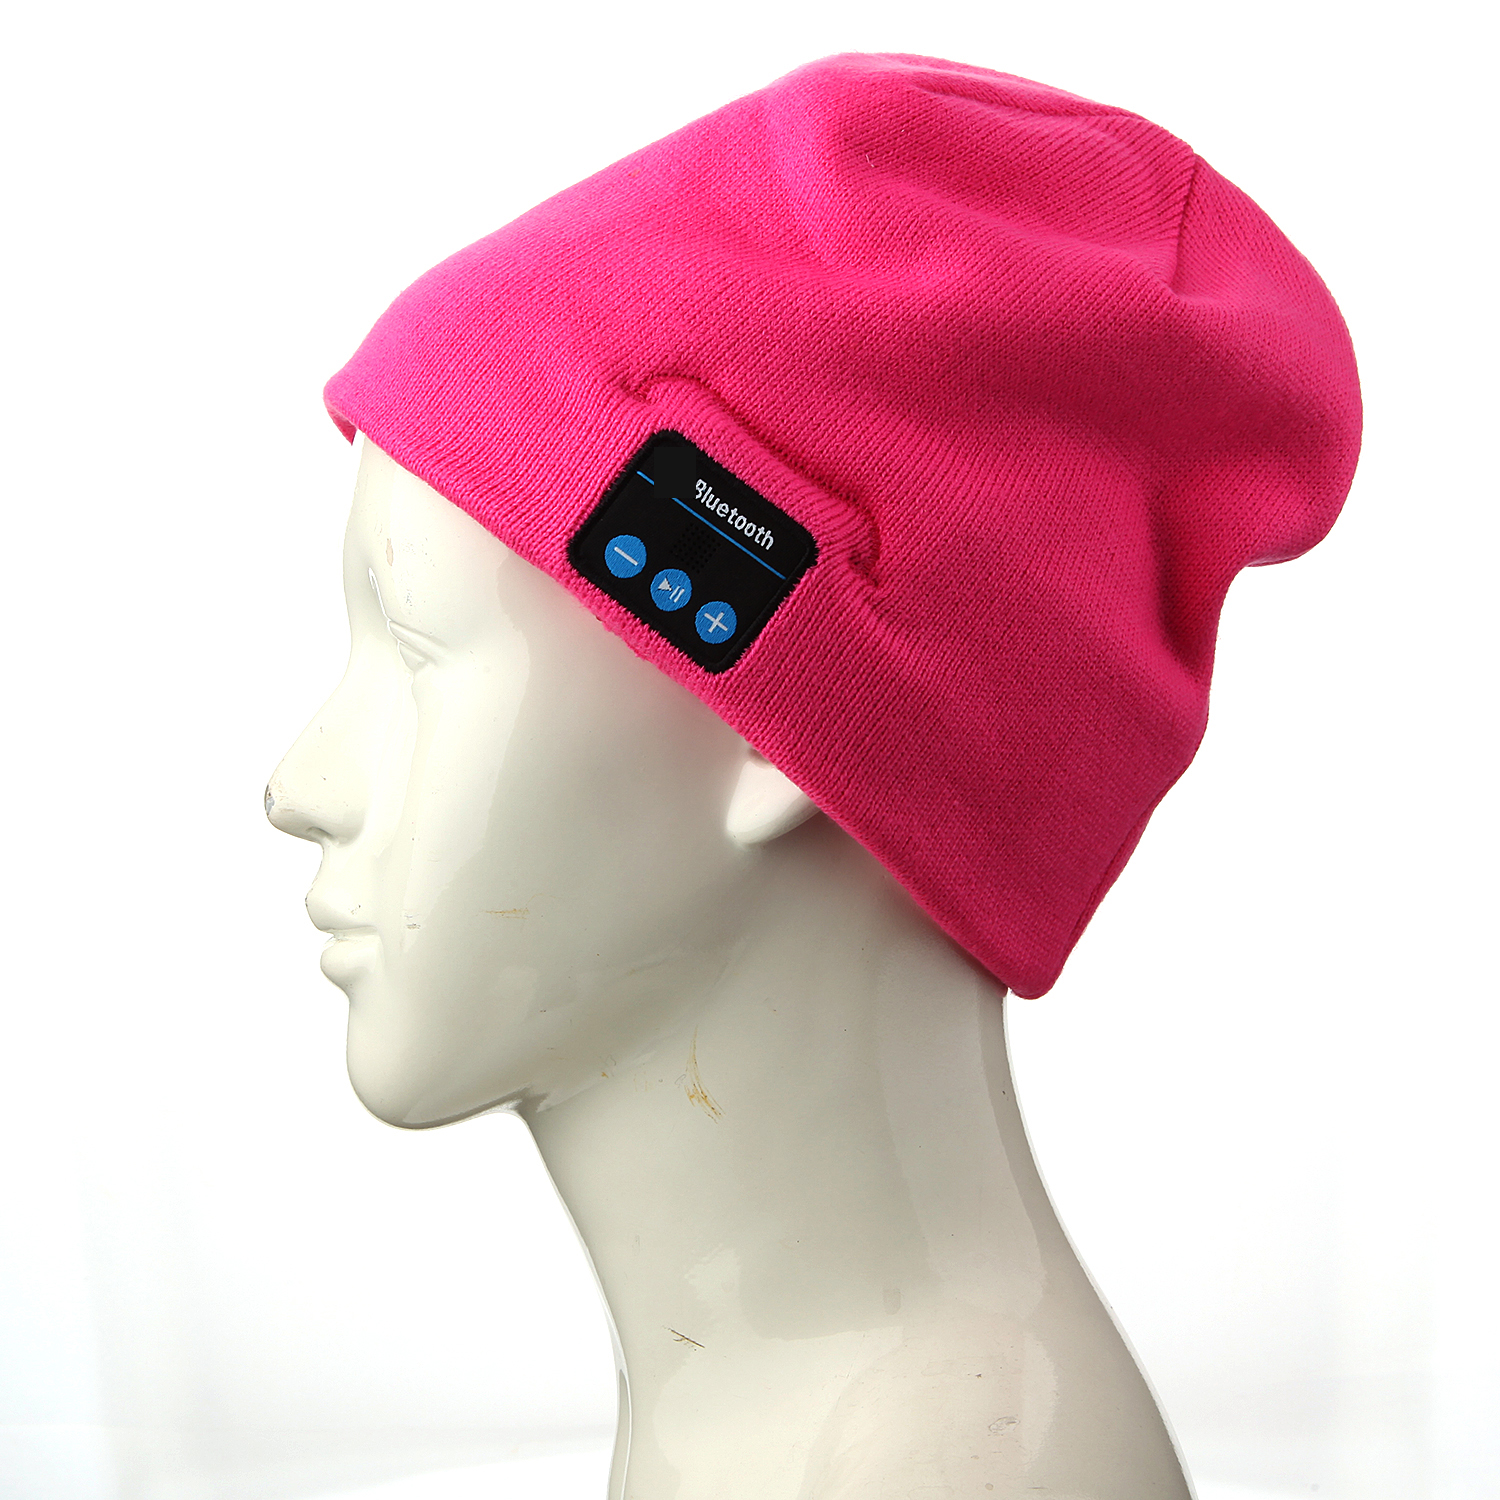 FINGO Warm Beanie Hat Wireless Bluetooth Smart Cap Headphone Speaker with Mic Rose